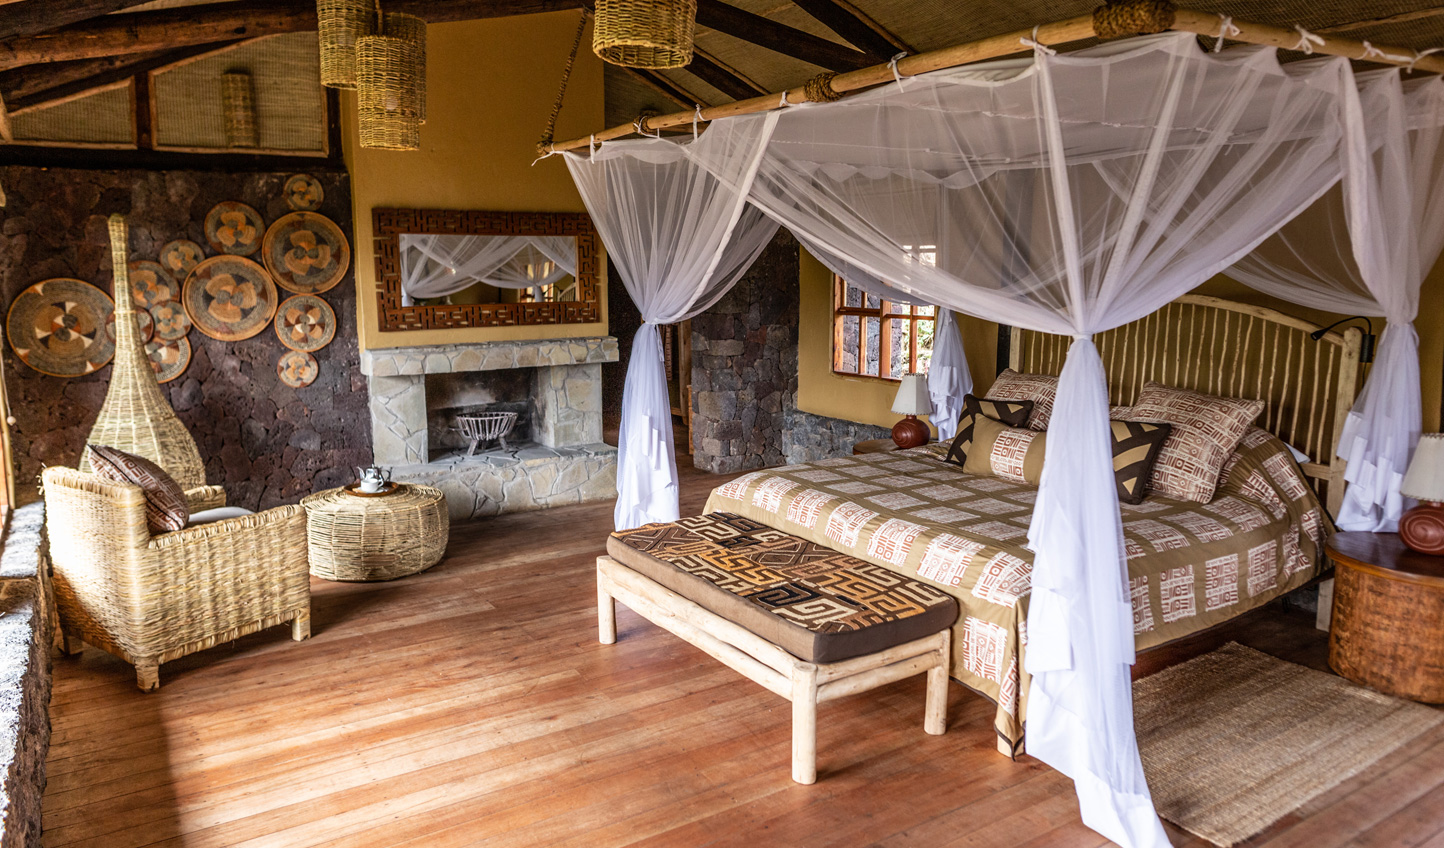 Rustic luxe bandas that provide the perfect spay to unwind after a day out trekking